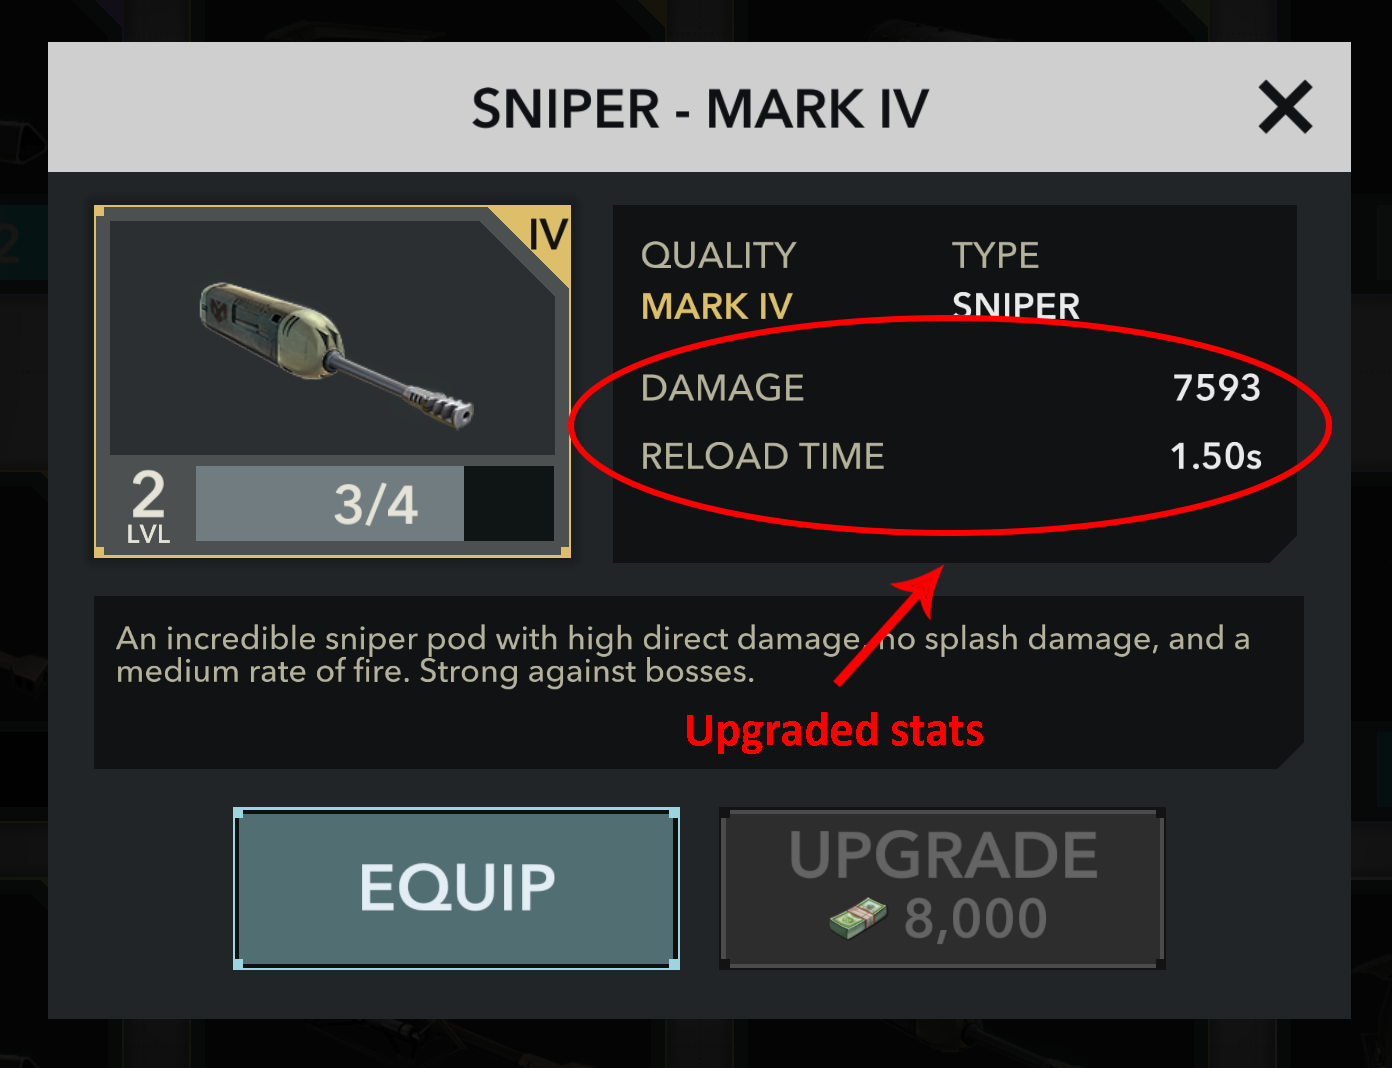 Sniper_Mark_IV_Upgraded.PNG